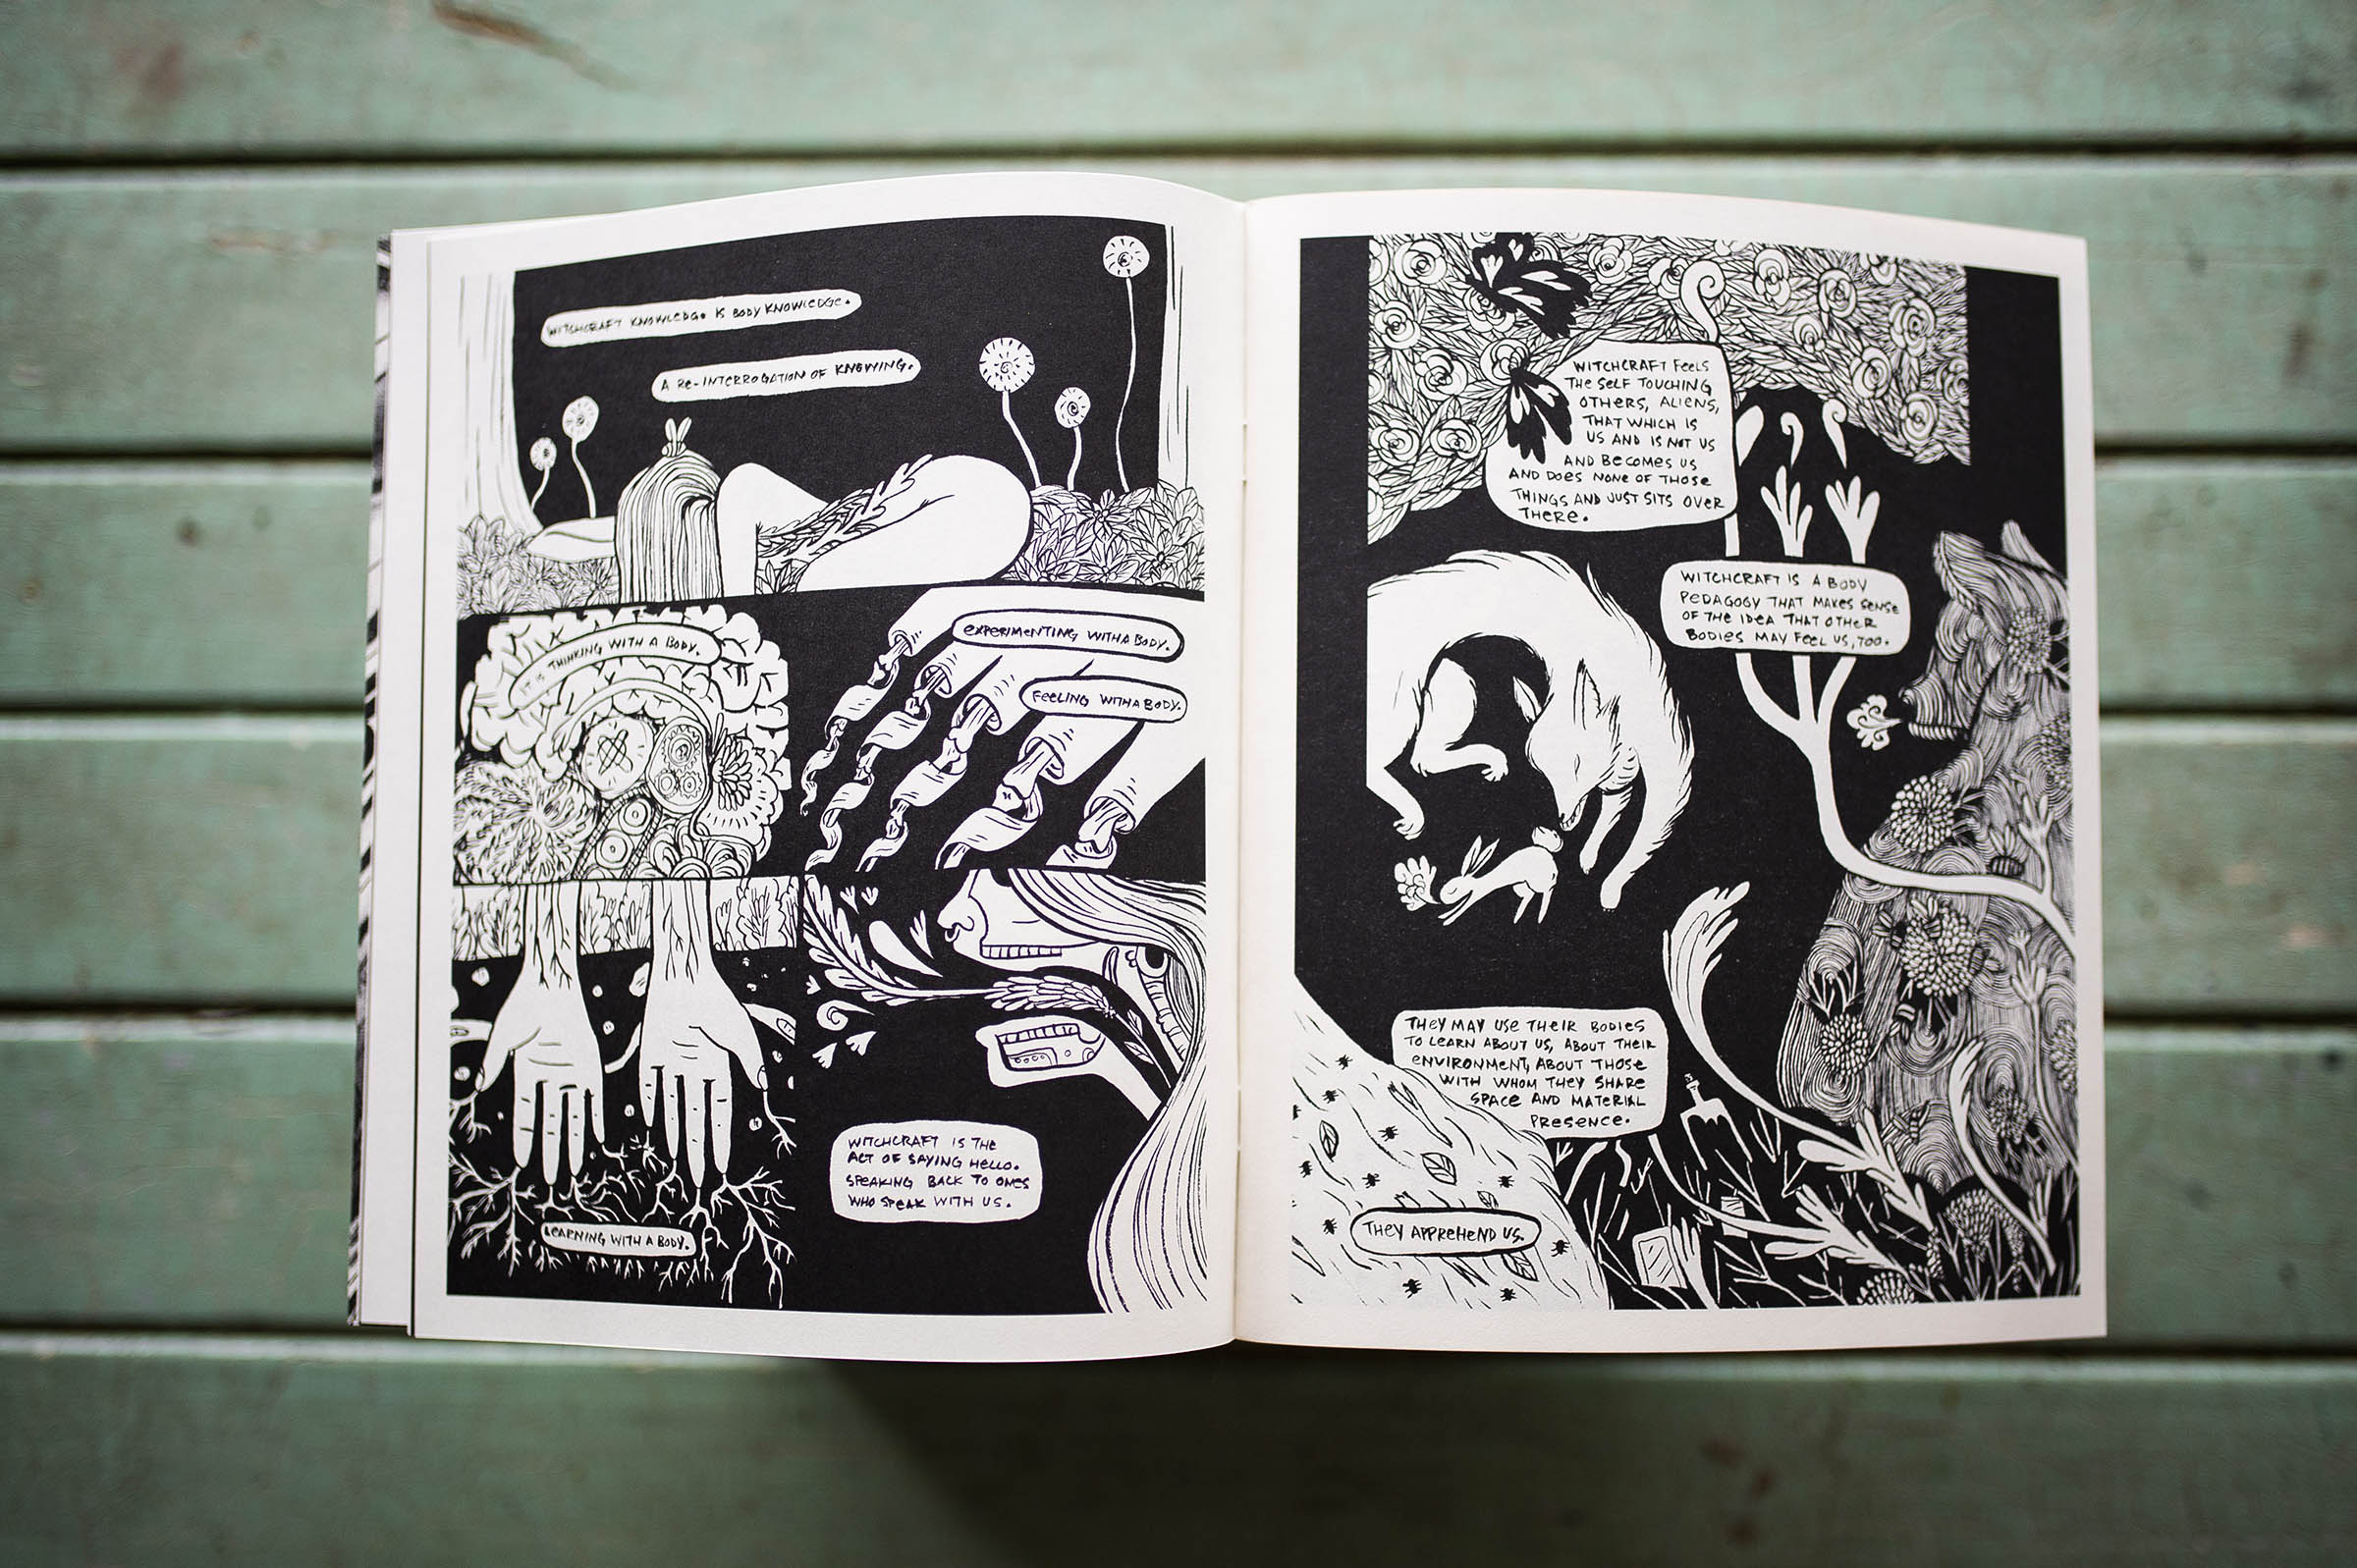 Against a background of distressed blue wooden slats, the graphic novel Witchbody lies open. The black and white pages show a profusion of flowers, roots, leaves, animals, and human bodies, flowing into each other.